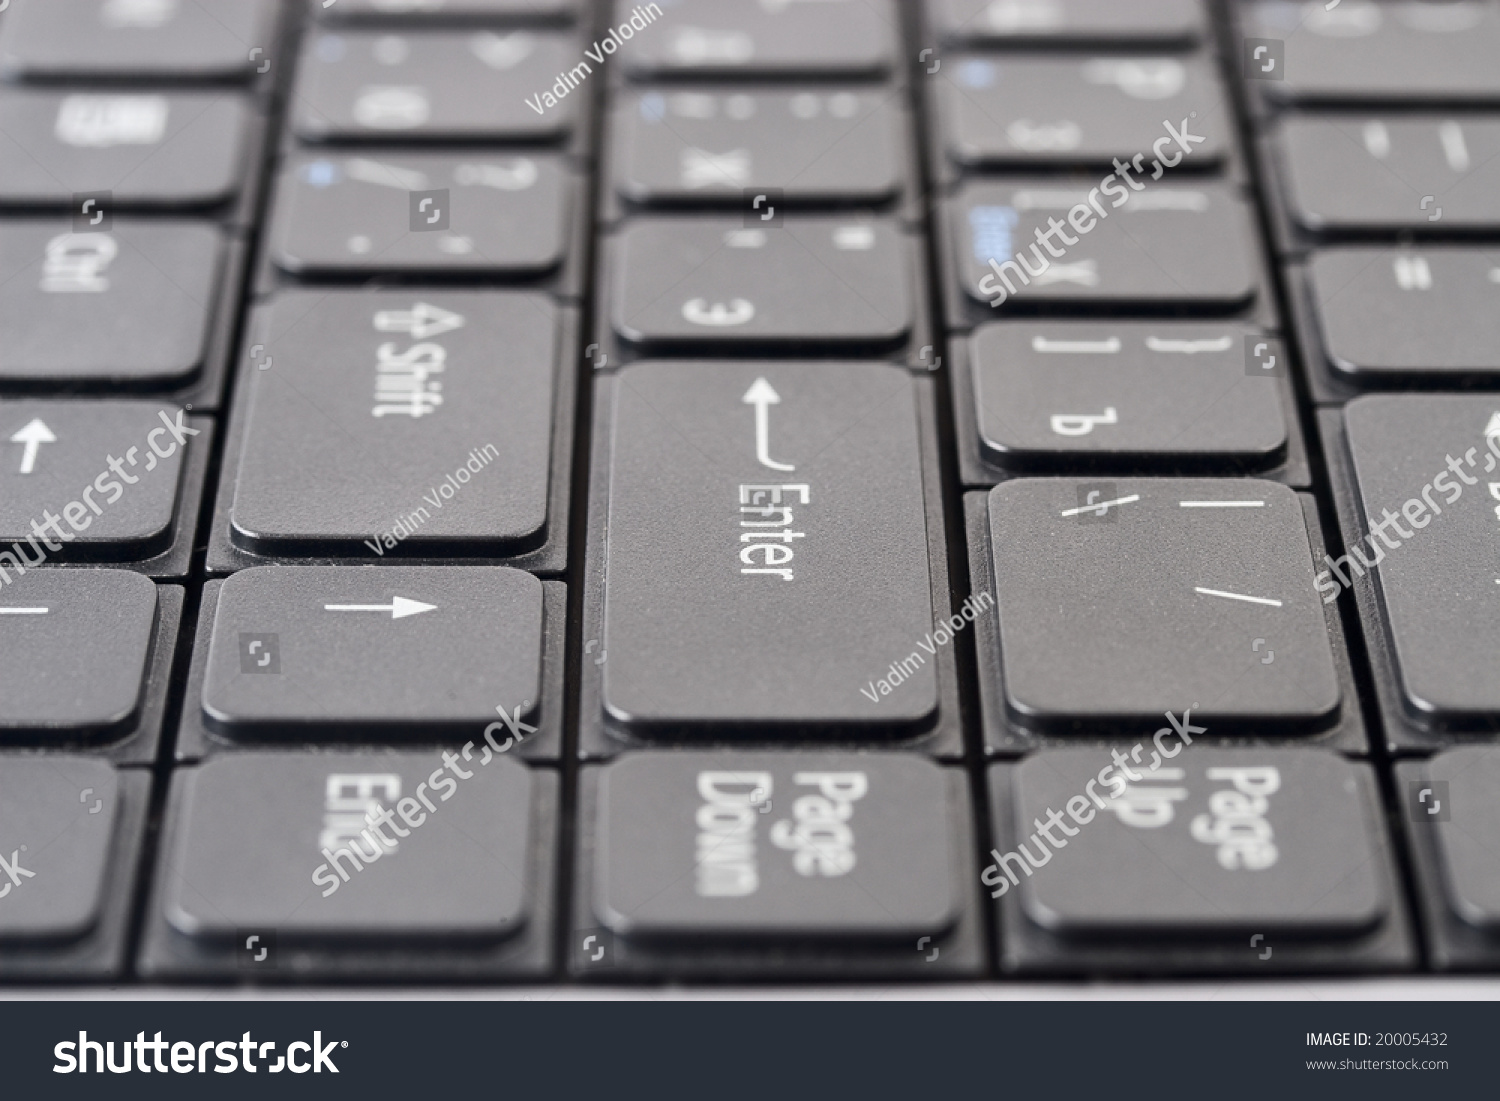 Laptop Black Keyboard With Symbols On Button Ez Canvas